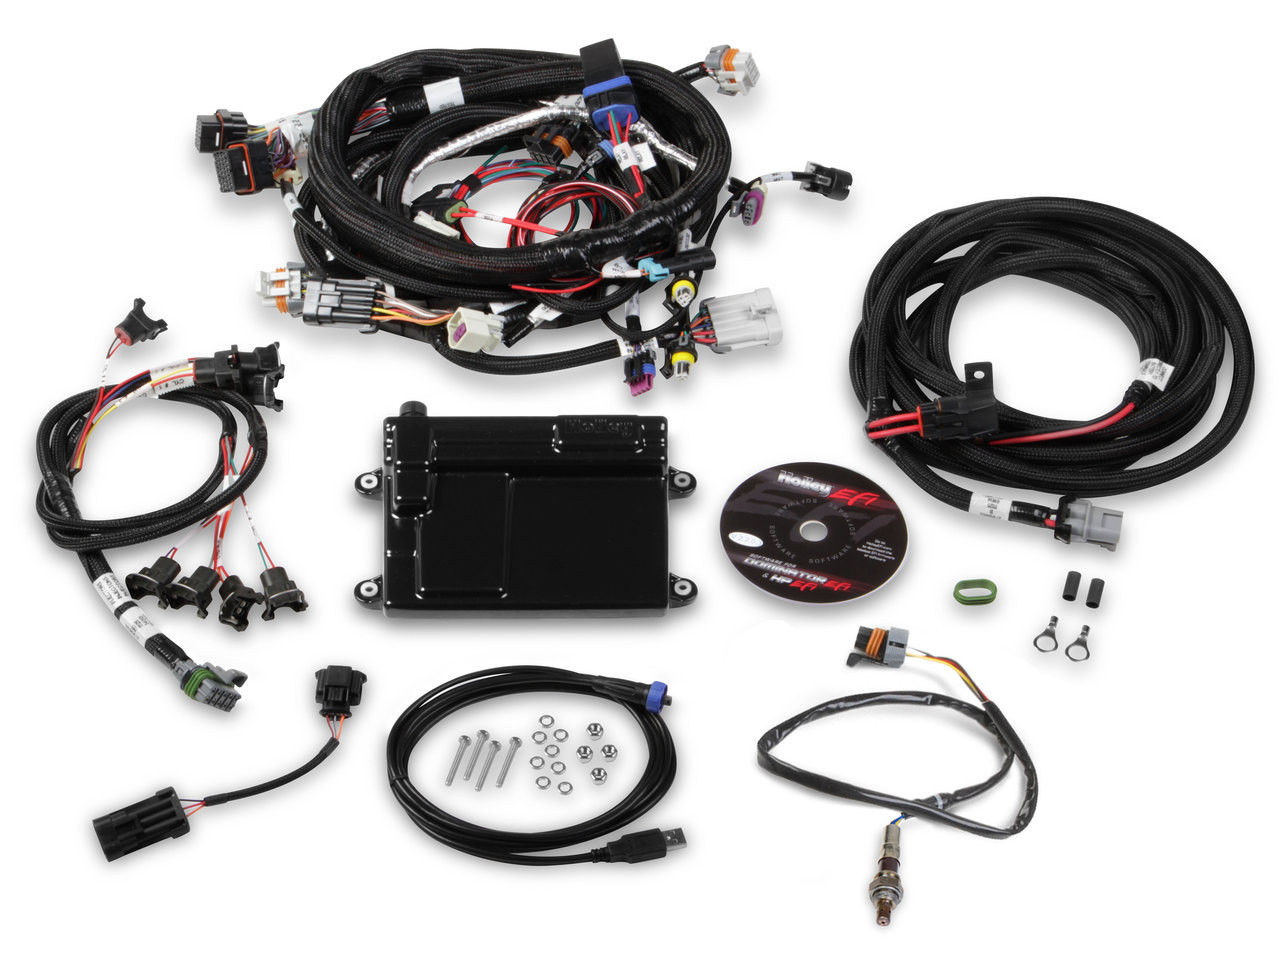 holley hp efi plug and play ecu and harness kit for gm ls2 ls3  [ 1280 x 964 Pixel ]